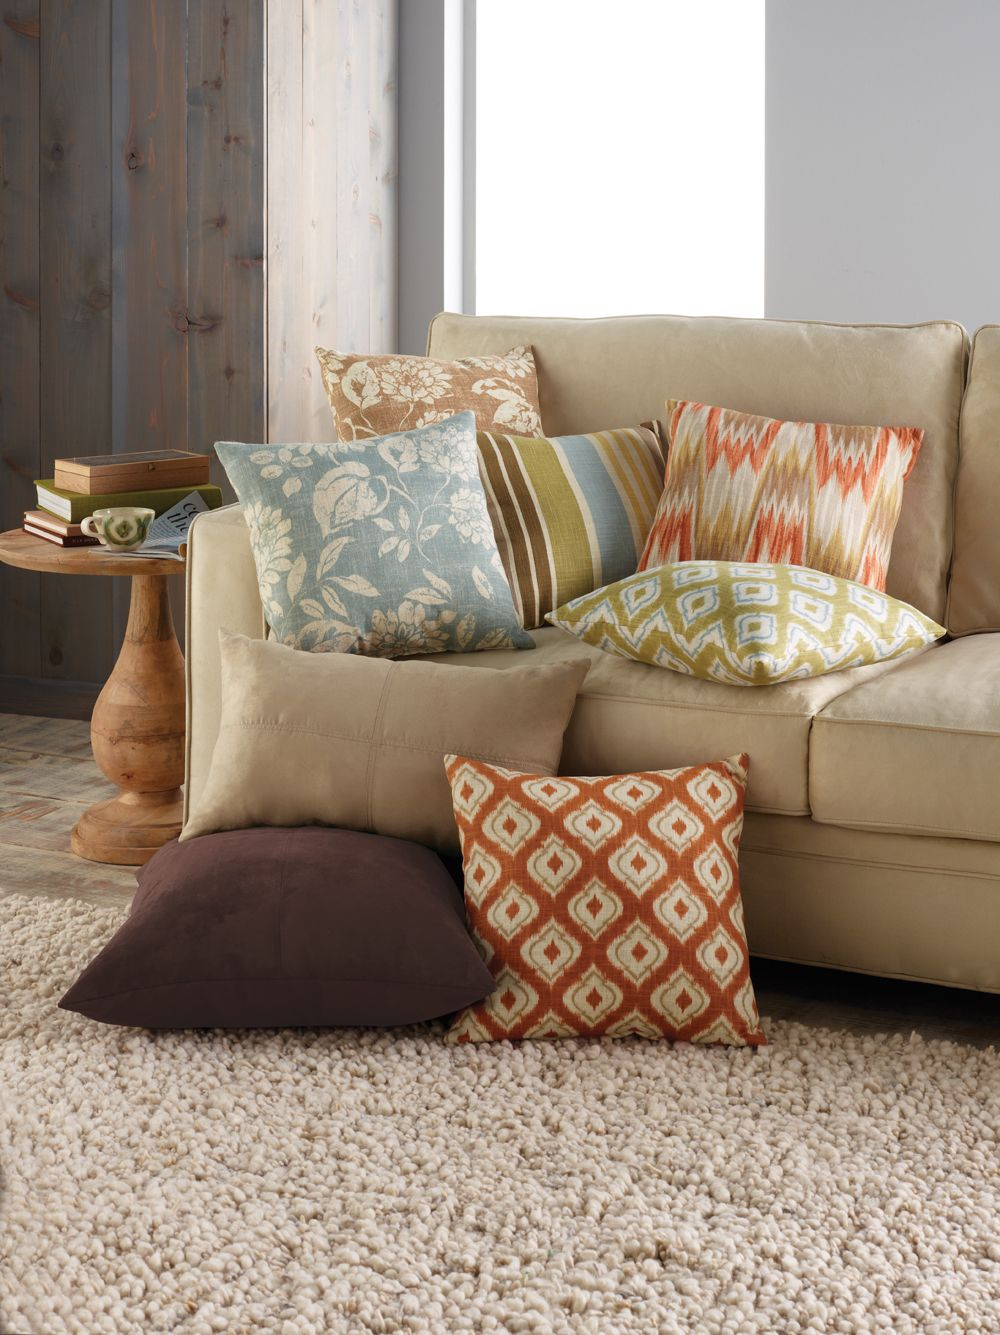 Kohls Decorative Pillows Entrancing Throw Pillows Galore#homedecor #kohls  Home Style  Pinterest 2018